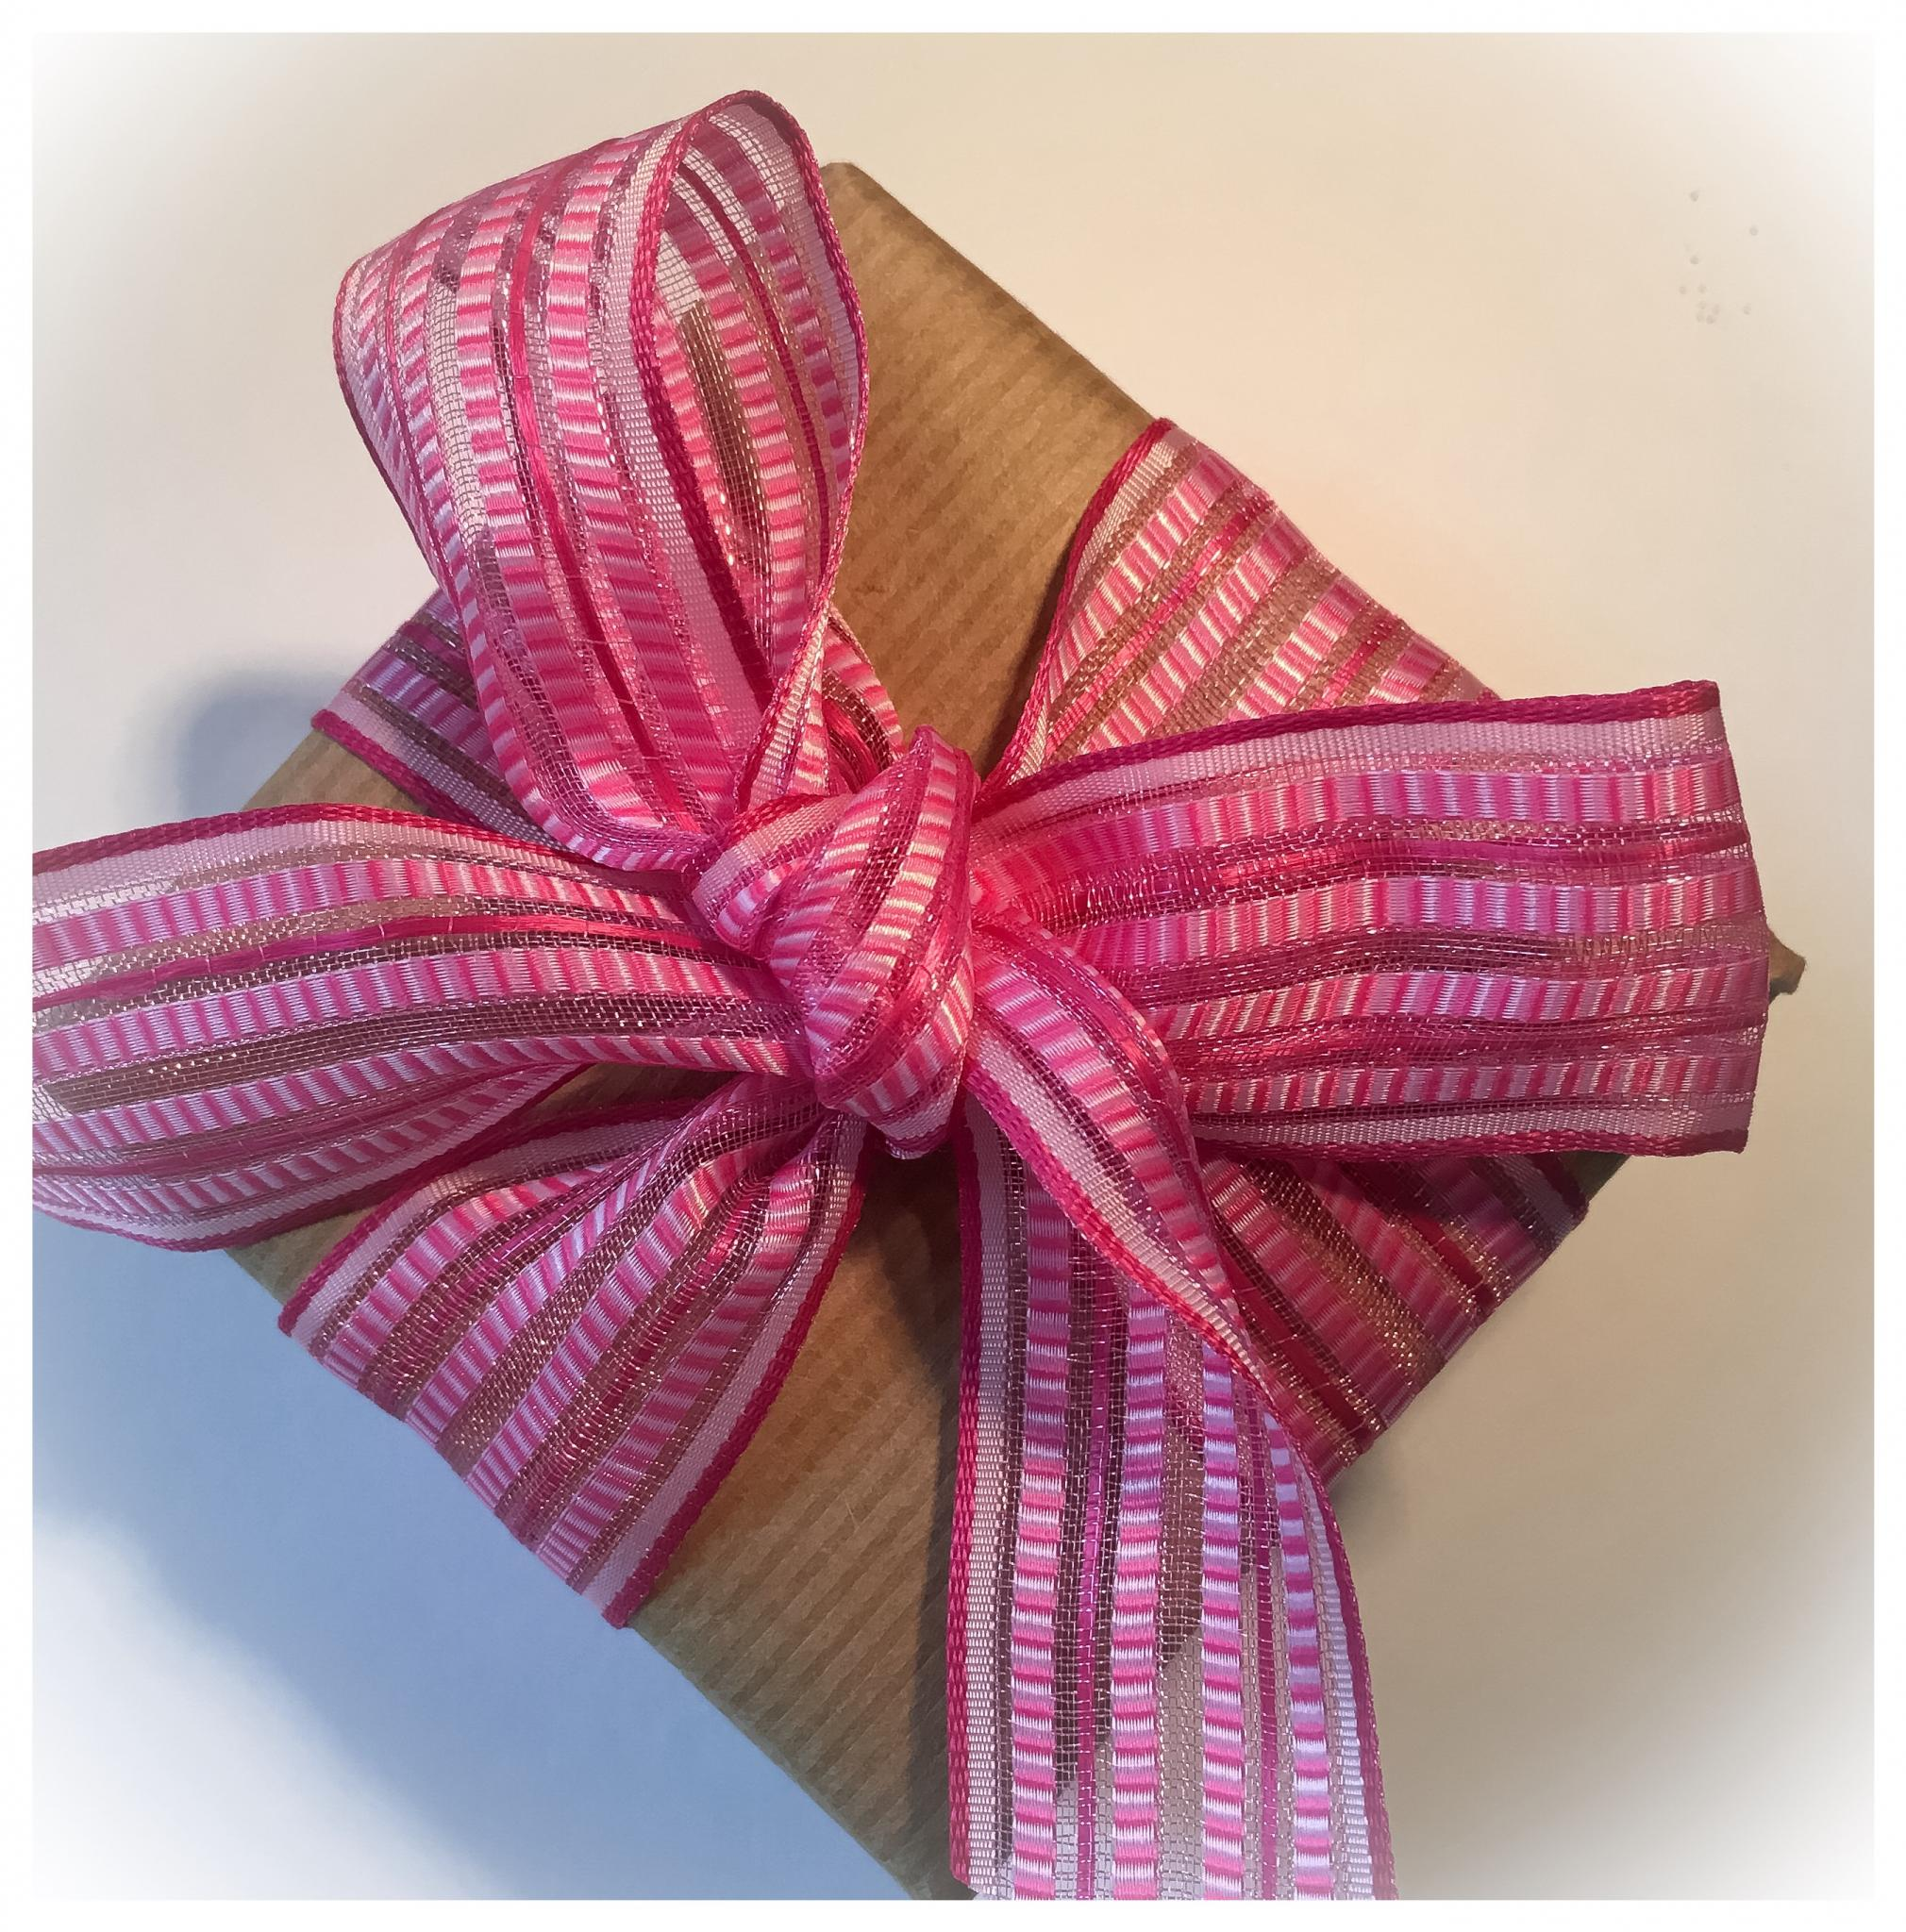 A perfect bow on a parcel from one of my giftwrapping workshops